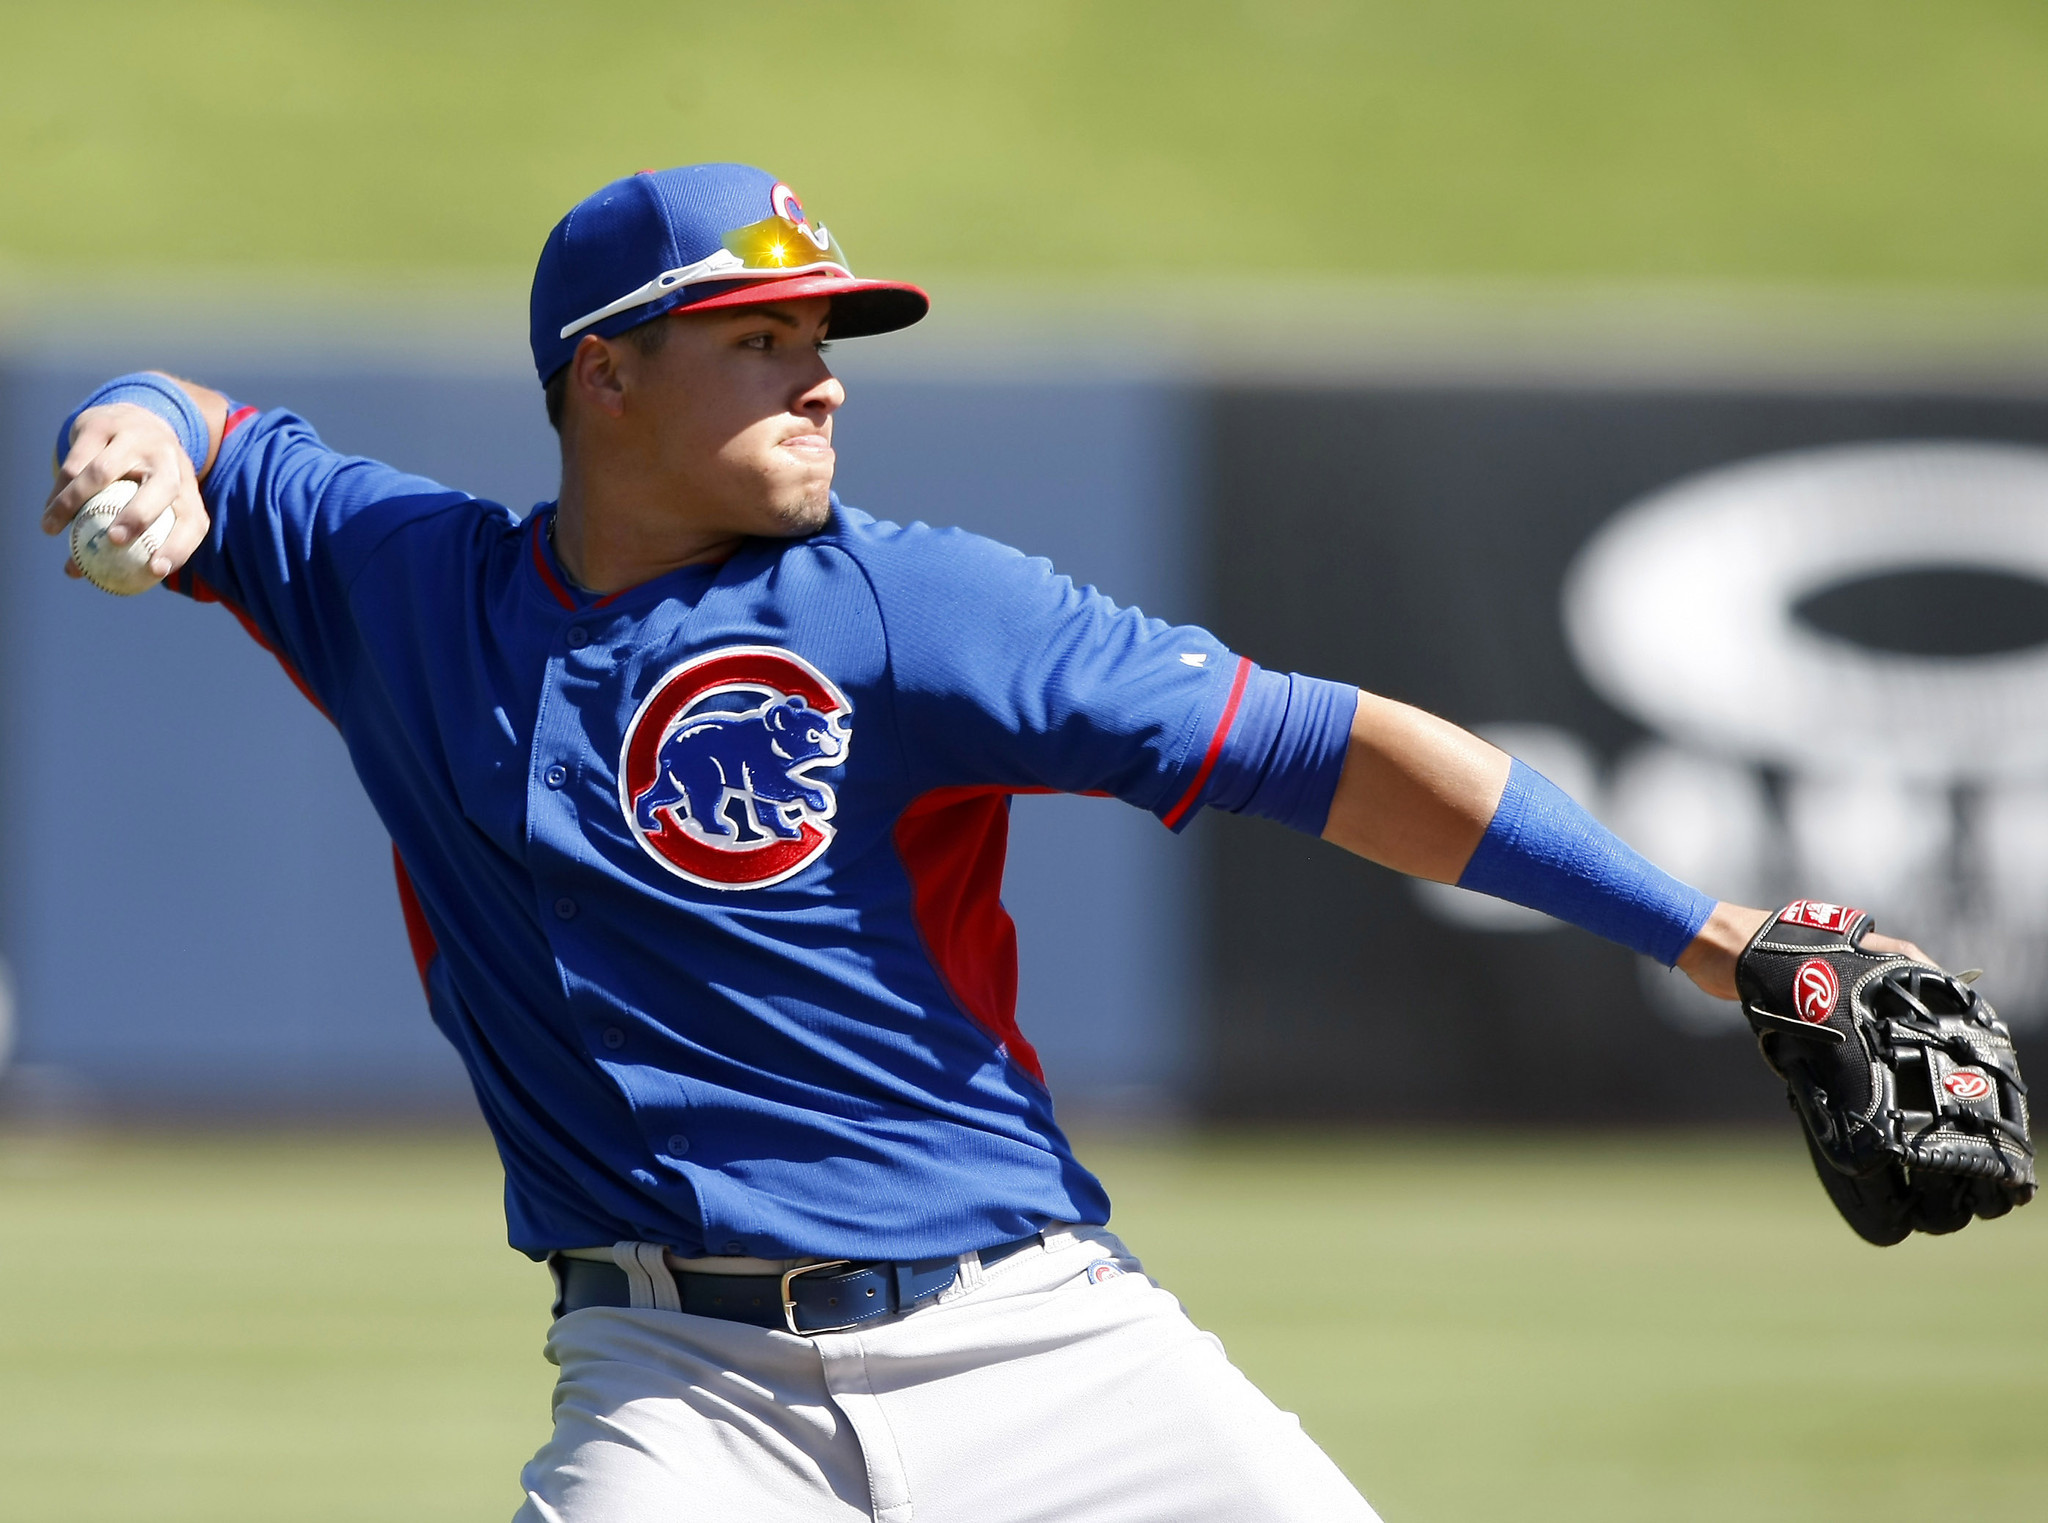 No good reason not to send Javy Baez down